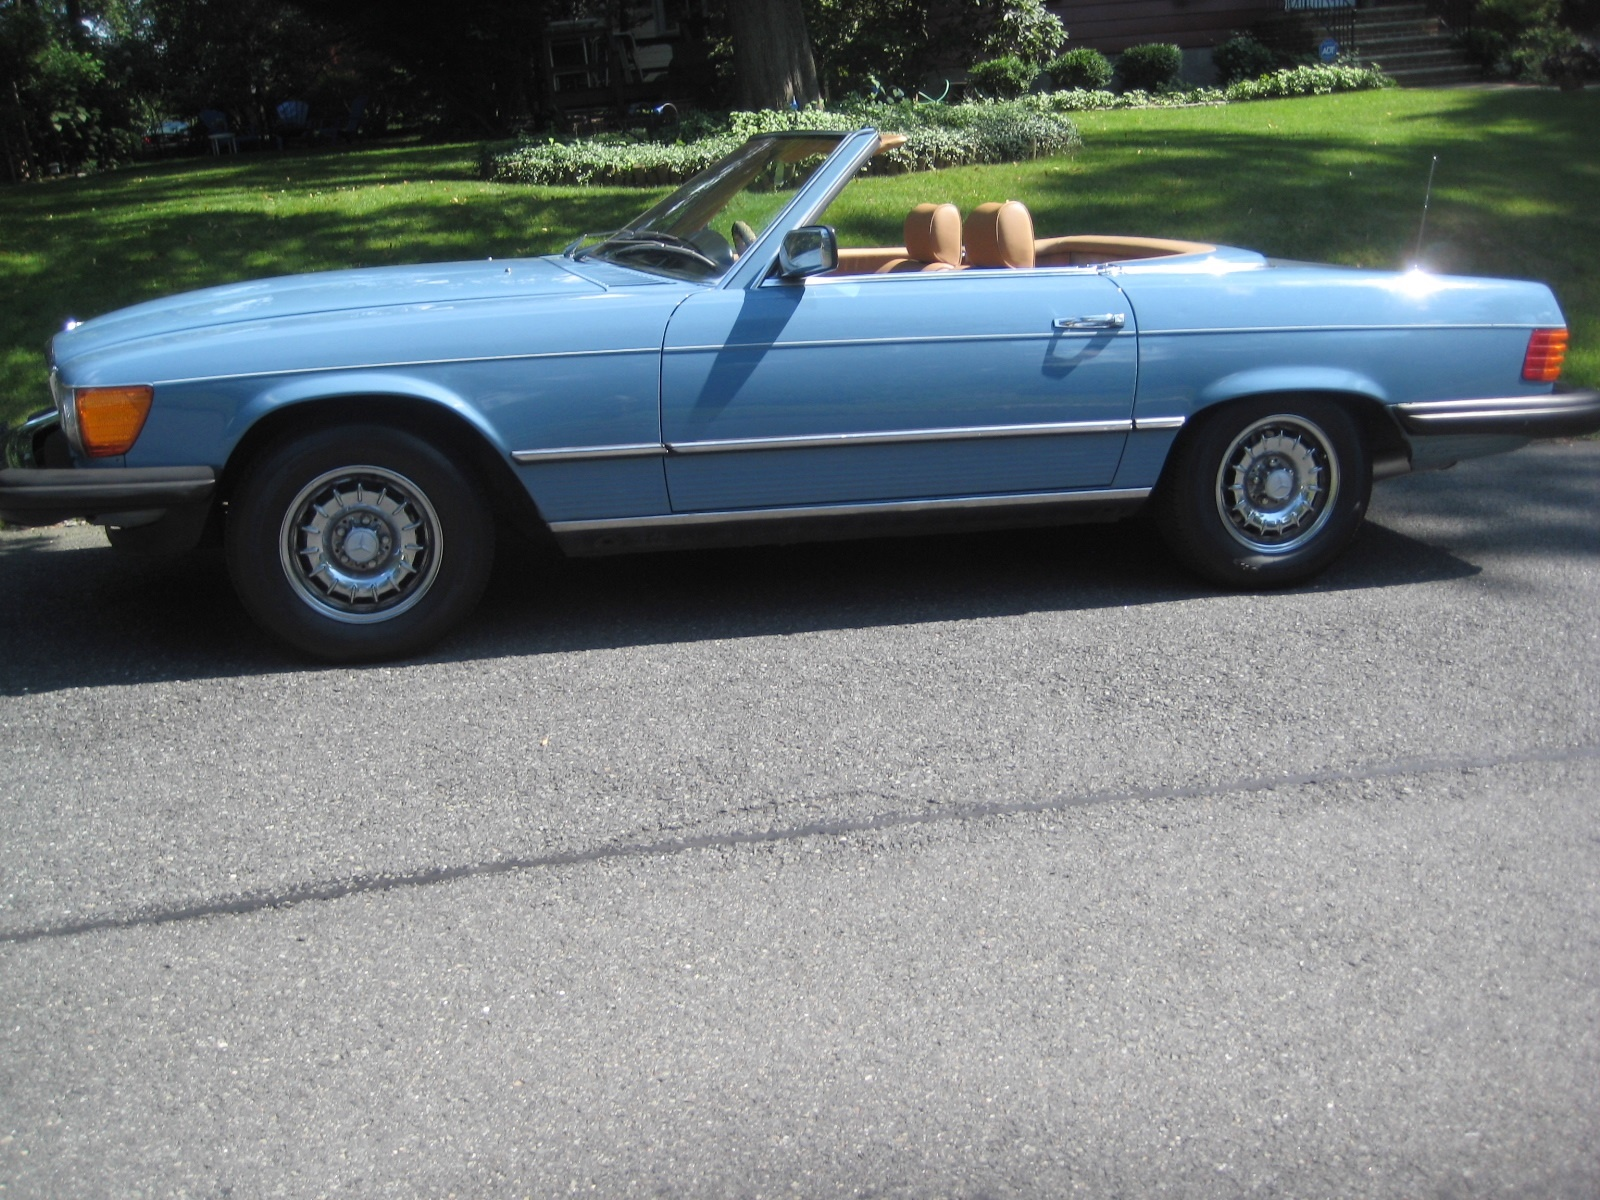 1980 mercedes benz 450sl stock lblue450sl for sale near for Used 450sl mercedes benz sale